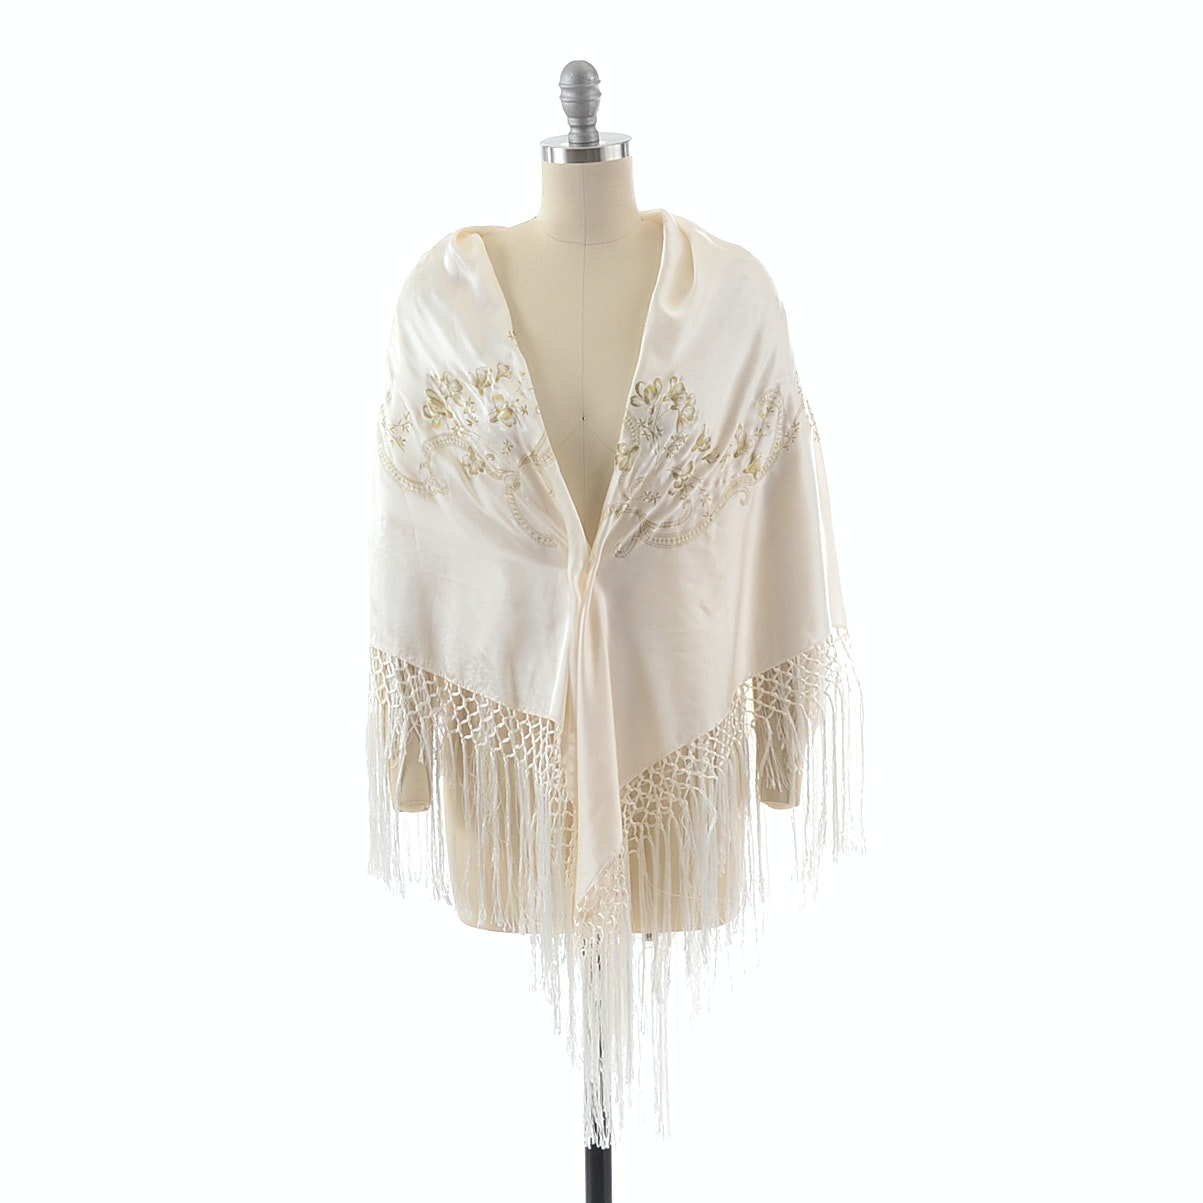 Hand Decorated Ivory Silk Shawl in Scrolling Floral Sprays with Hand Knotted Fringe